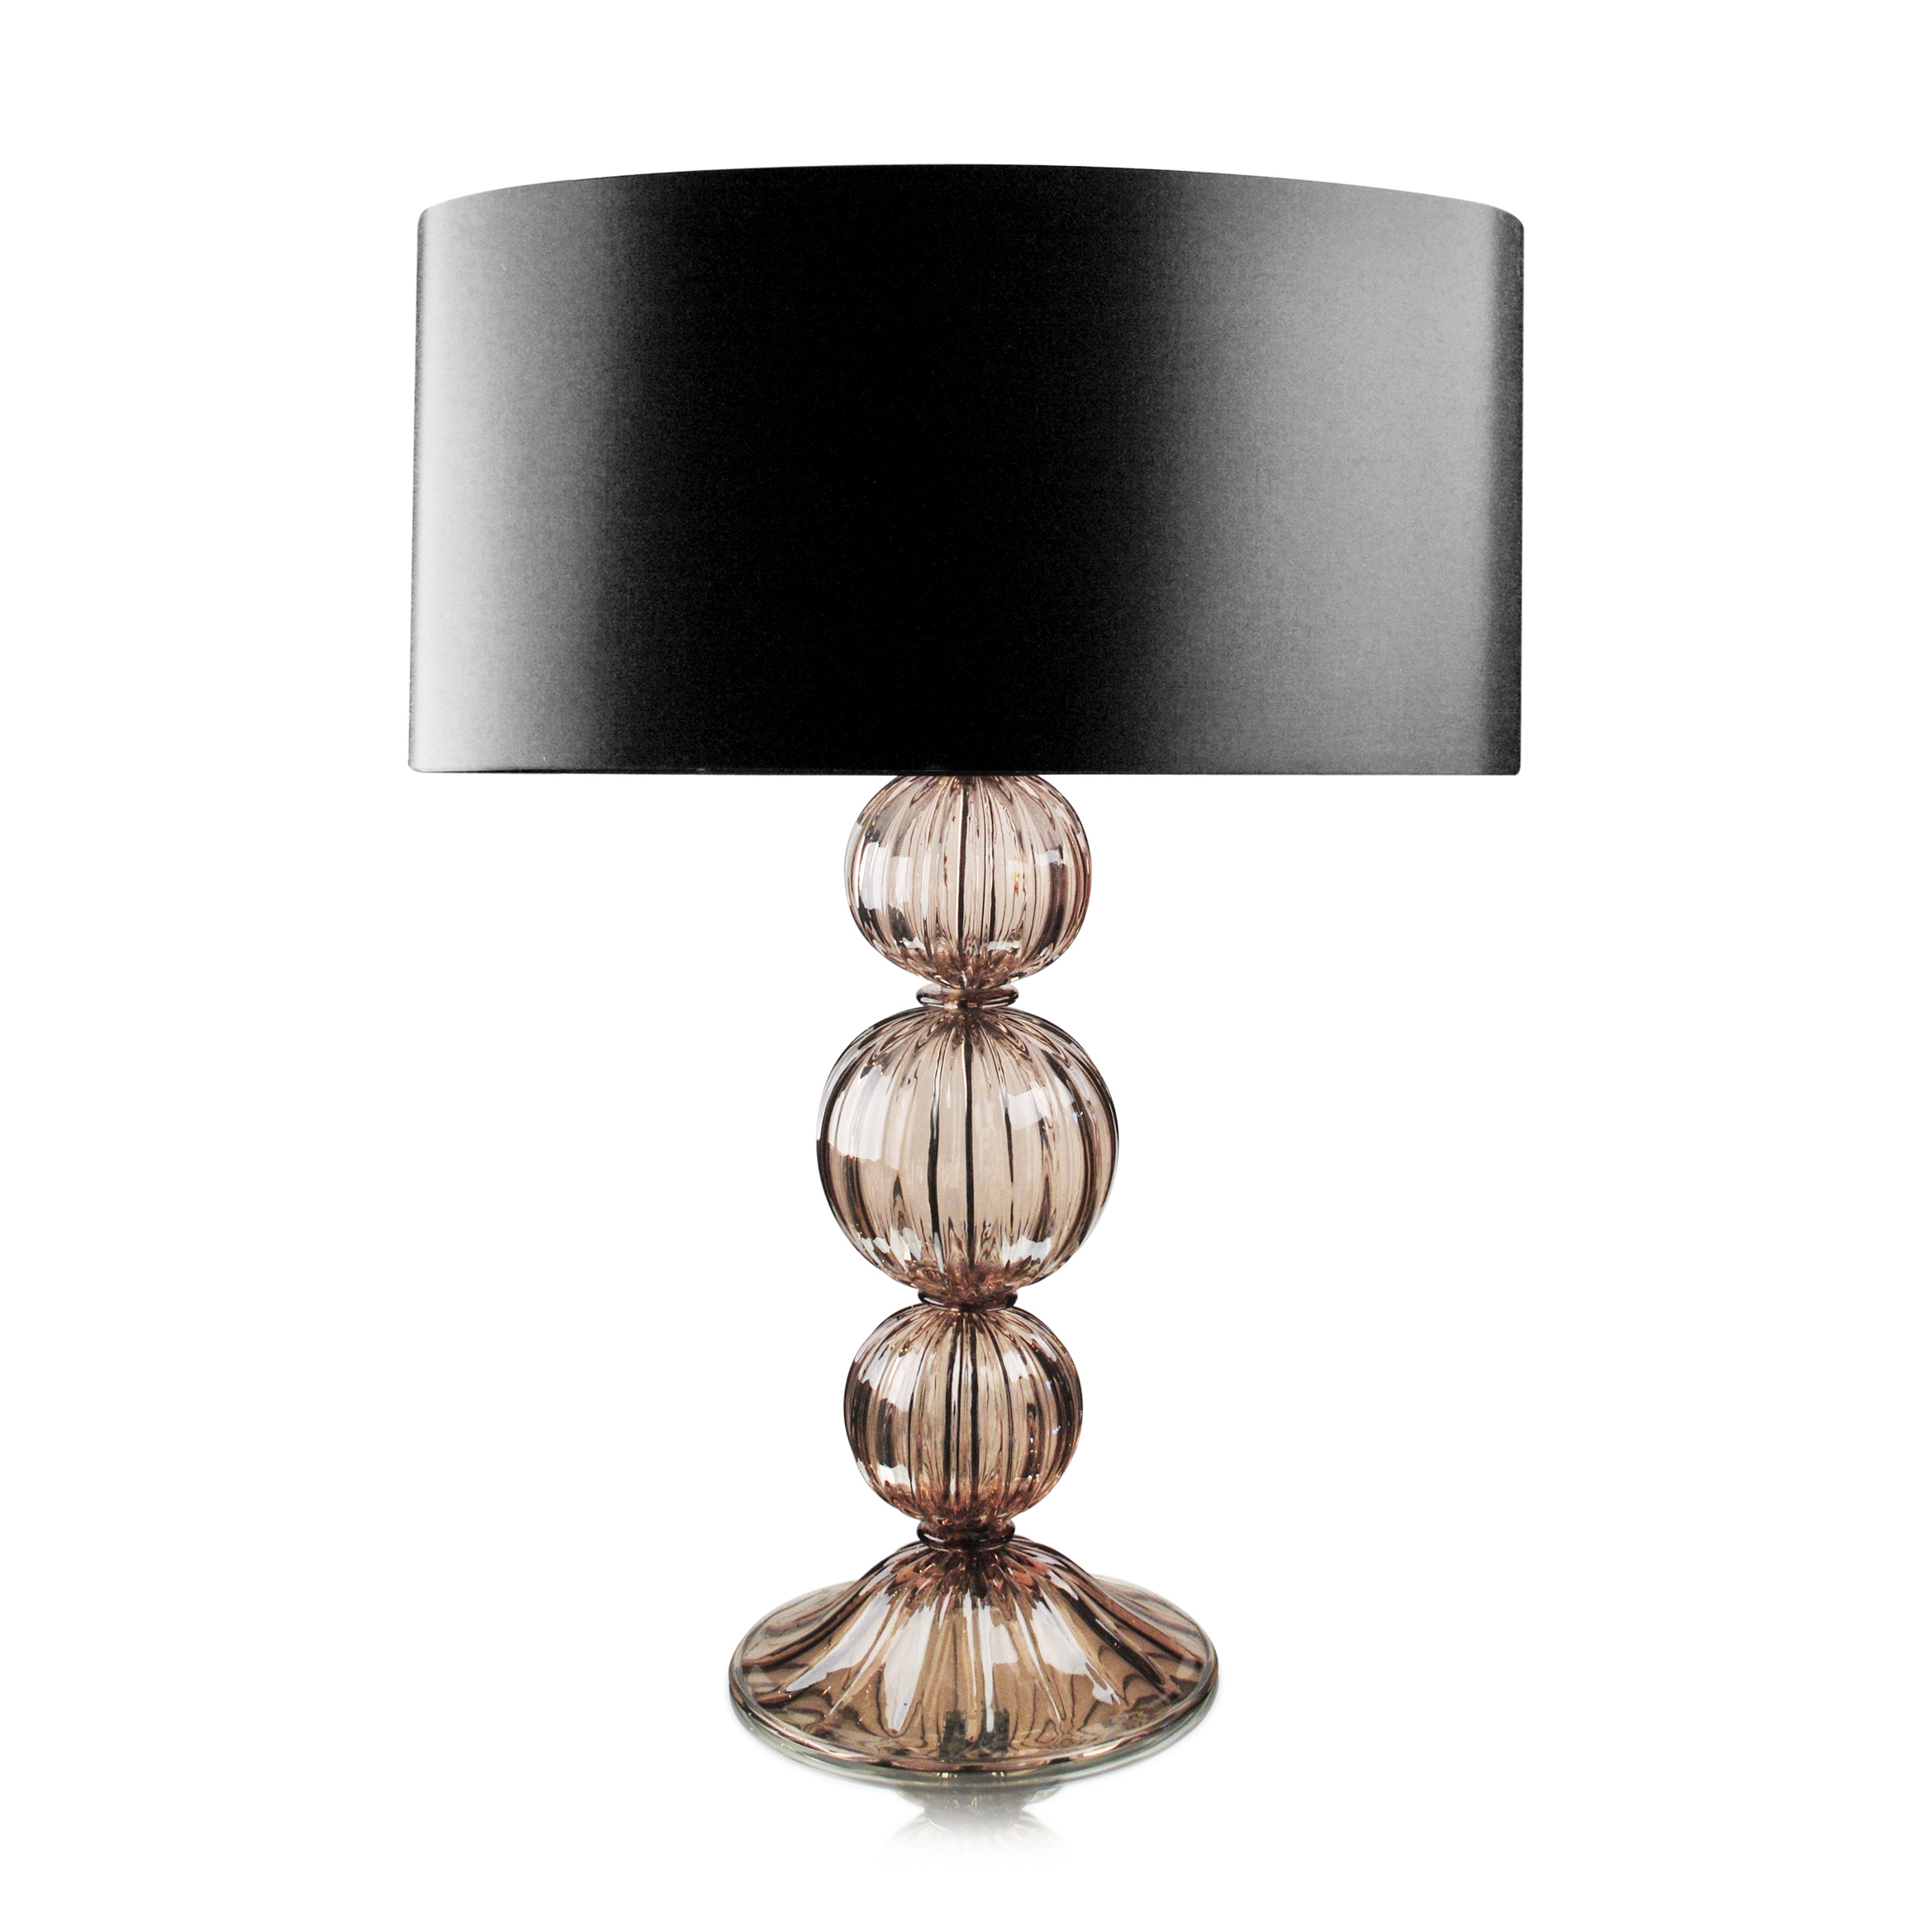 pretty small wooden table lamps bedside outdoor cordless argos lewis wood crystal light modern ceramic habitat tripod touch lamp powered black led mini john white bases glass